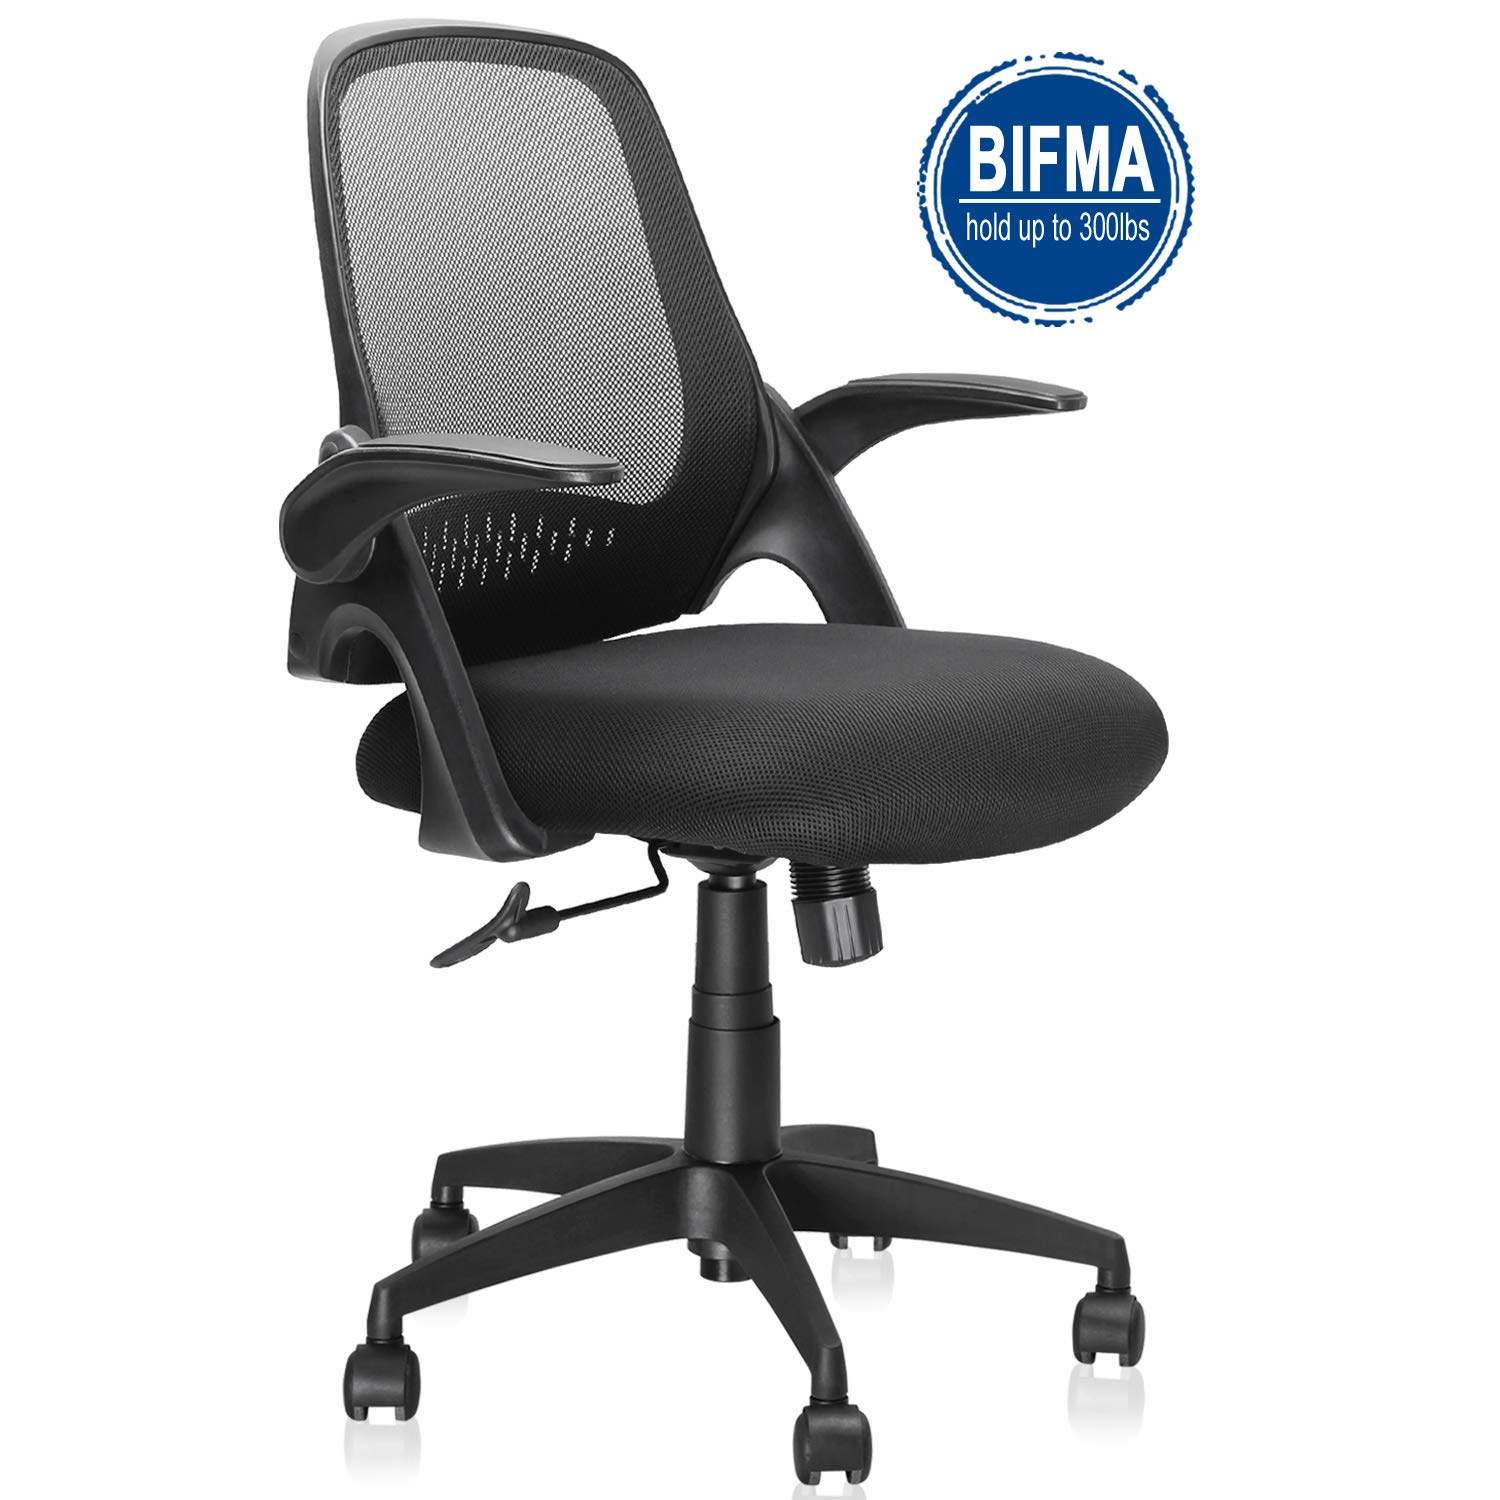 Ergousit Mid-Back Mesh Office Chair, Ergonomic Desk Chairs Swivel Computer Task Chairs with Adjustable Height and Flip-up Armrest - Lumbar Support and Sponge Cushion in Black (Black)